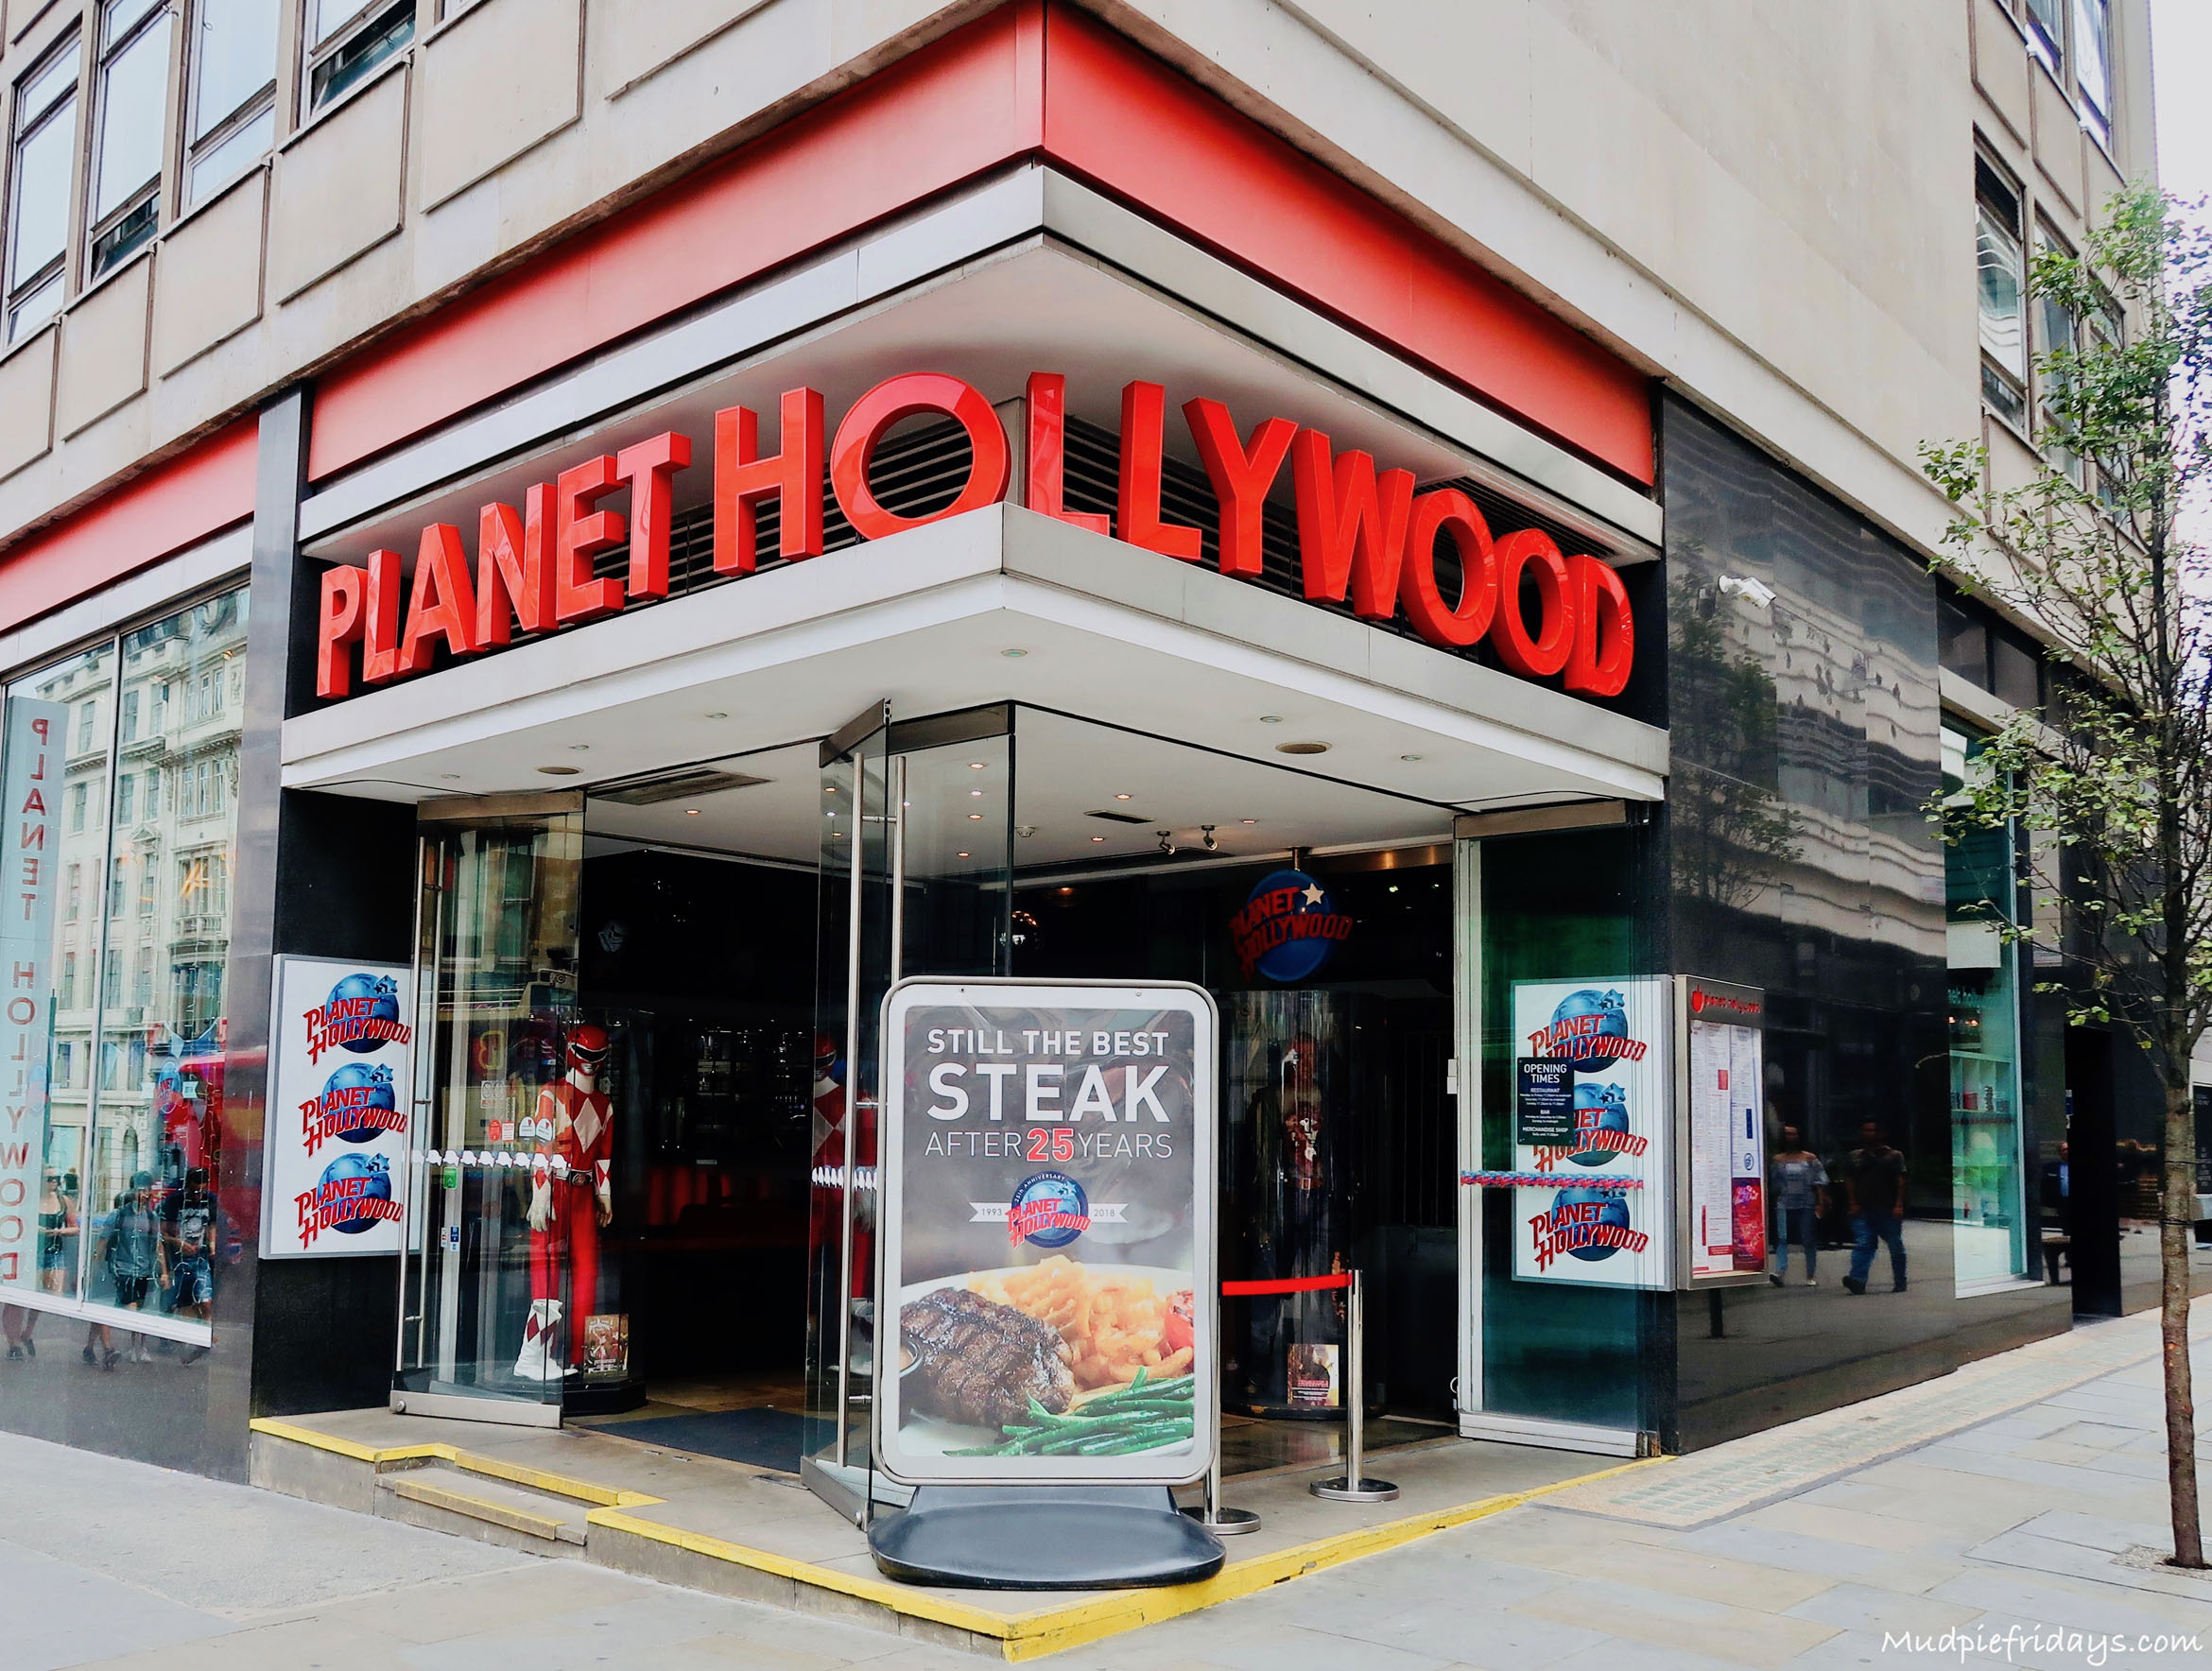 Review Planet Hollywood London  Mudpiefridays